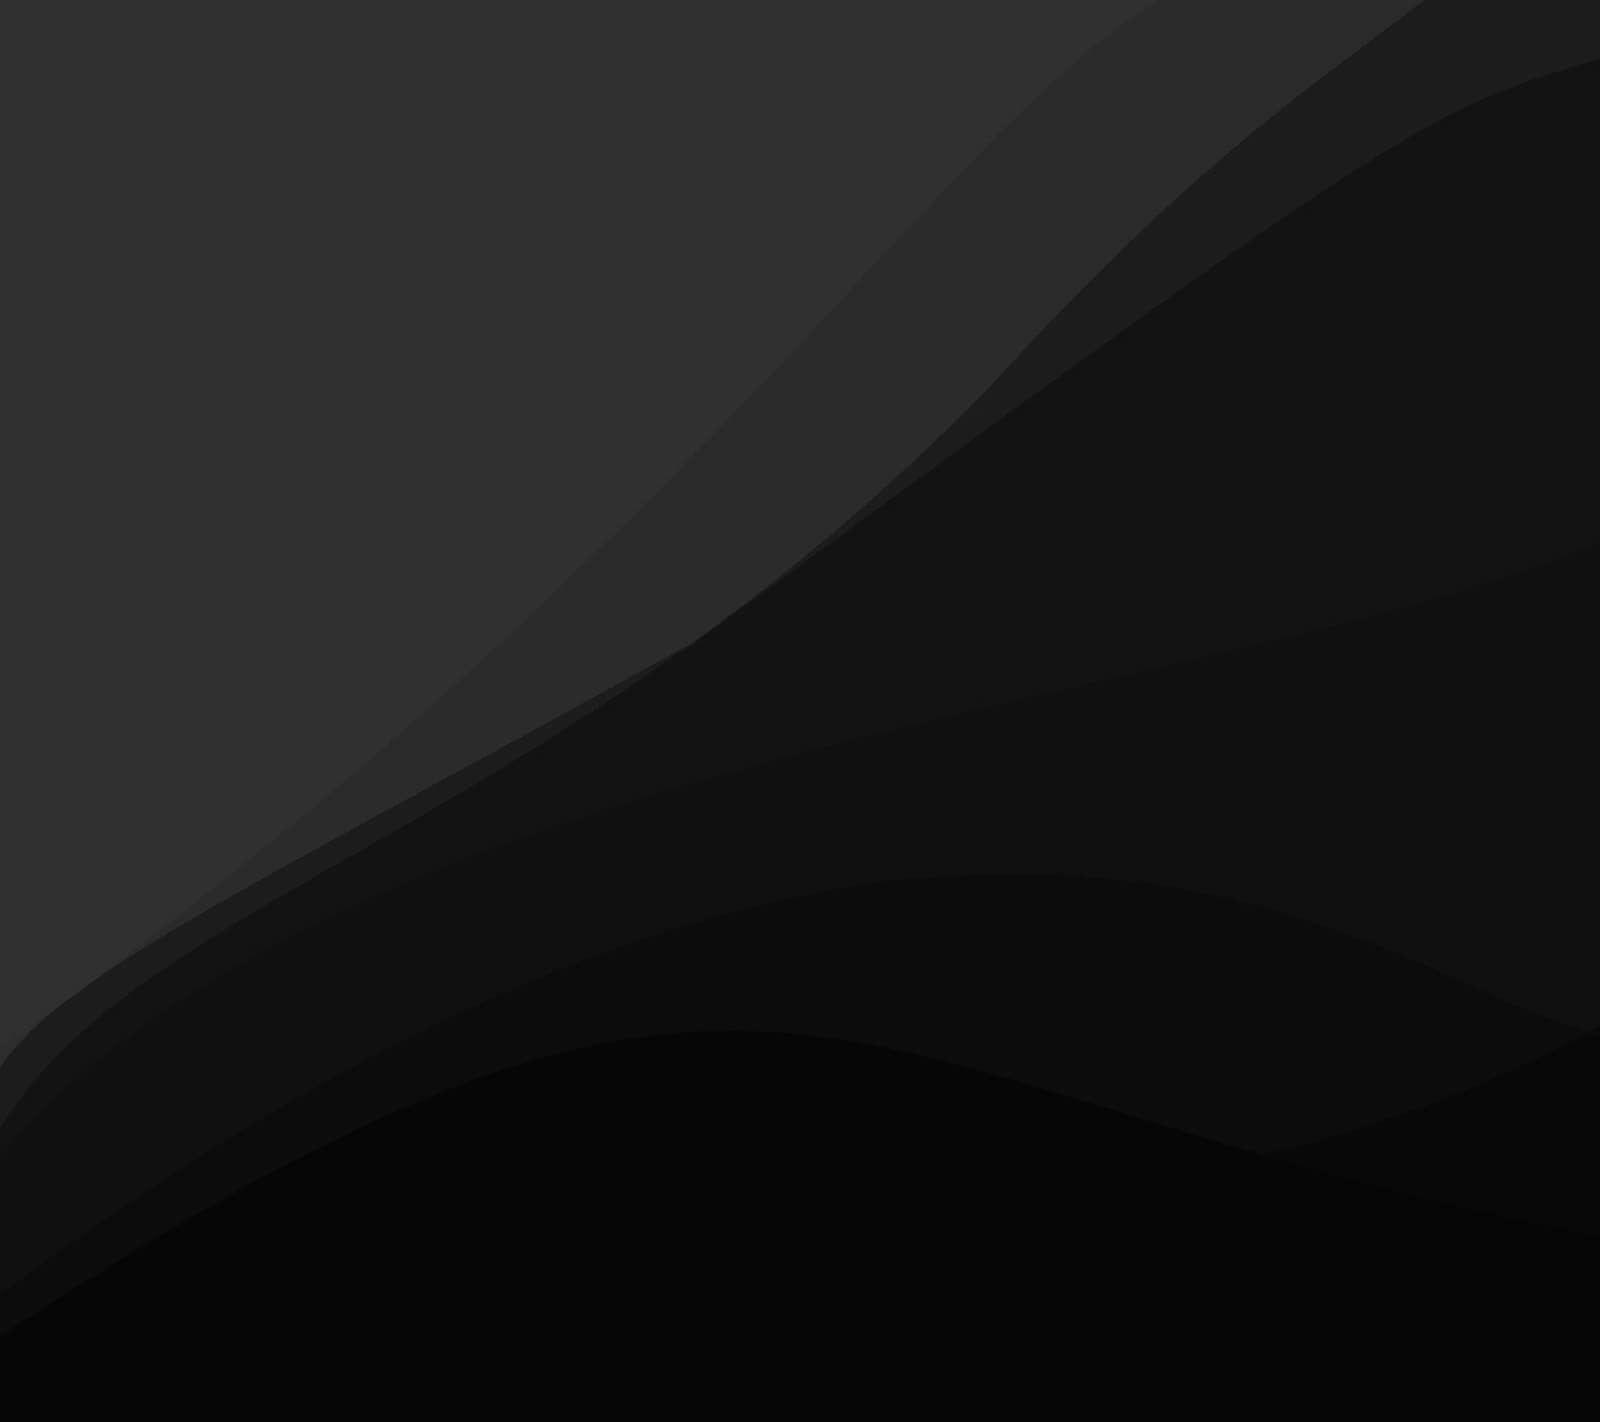 Black Xperia lollipop wallpaper